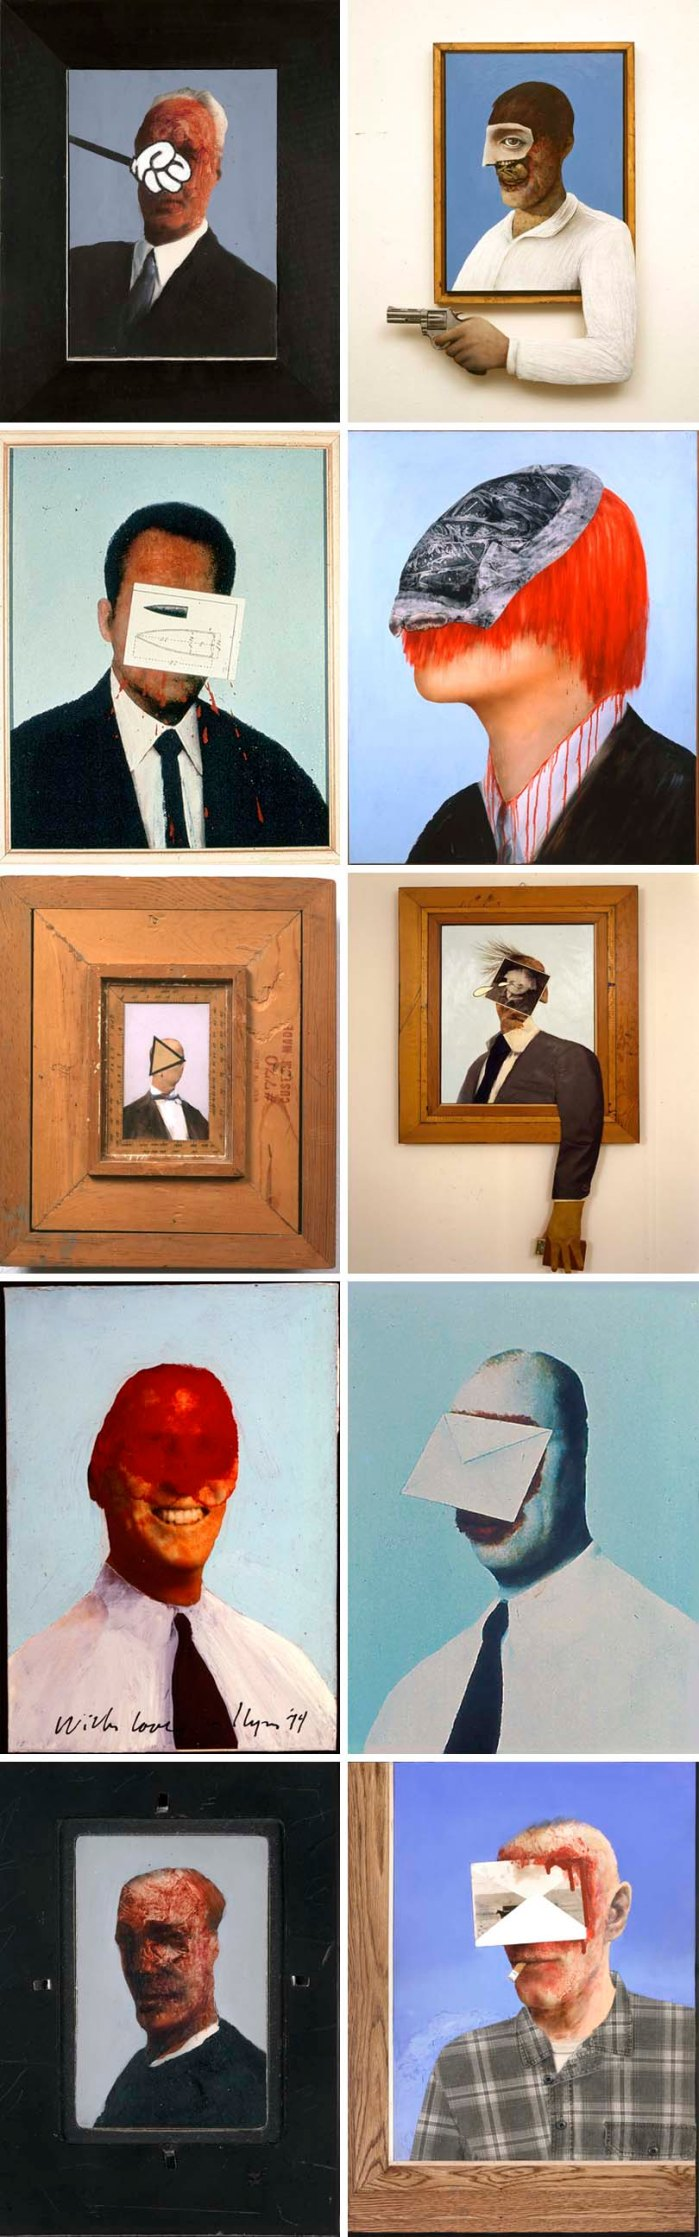 Llyn Foulkes, Collage, multimedia portraits, anti-corporate, political art, New Museum exhibit